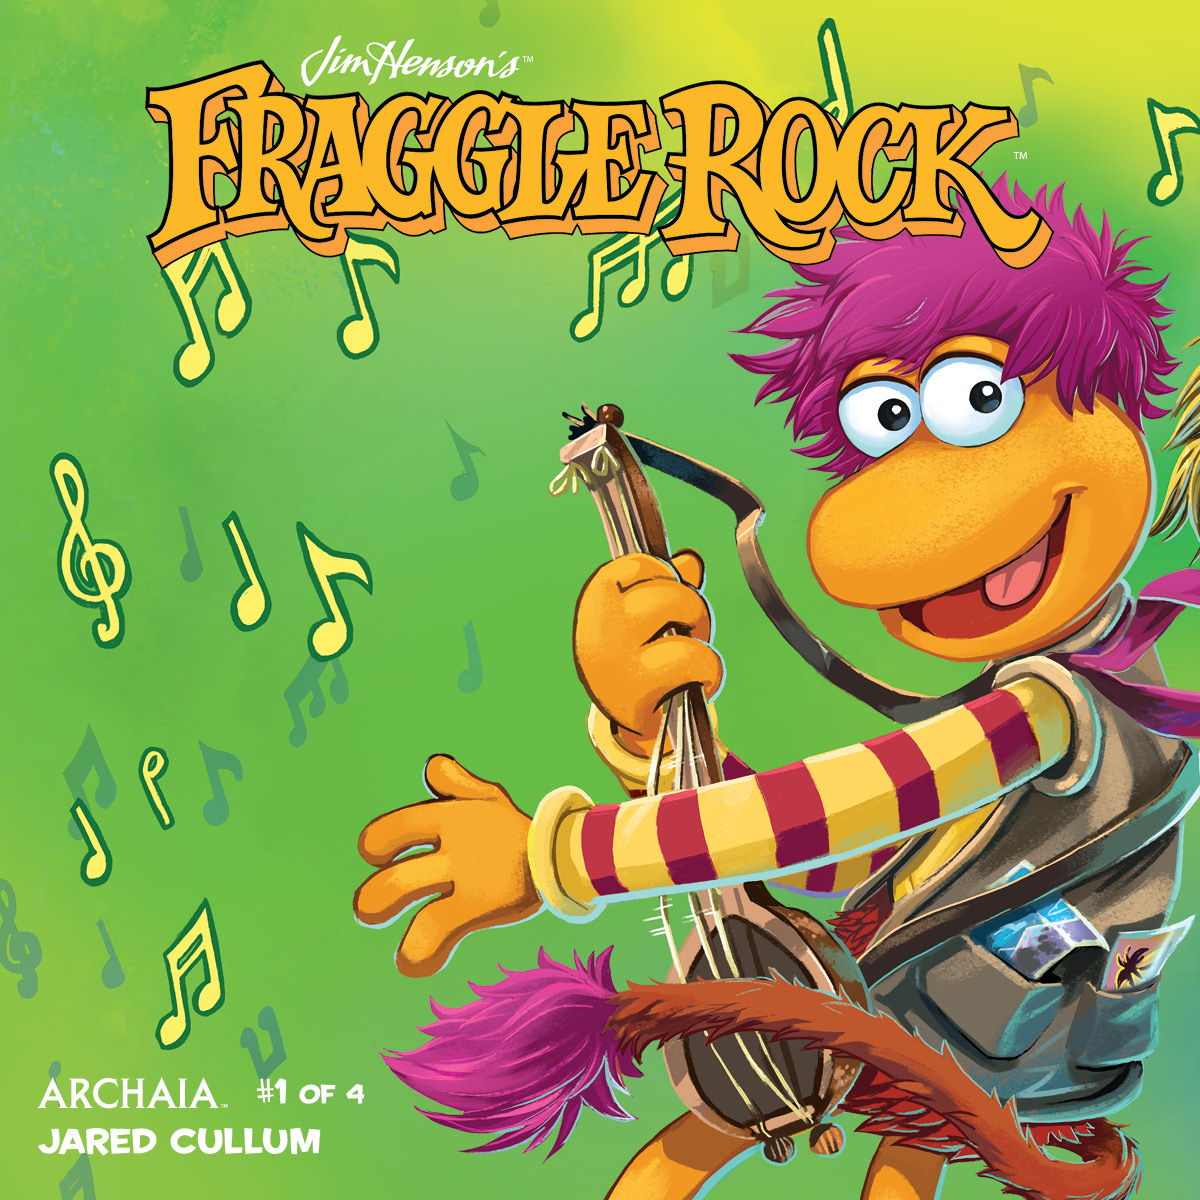 JIM HENSON FRAGGLE ROCK #1 SUBSCRIPTION MYLER CONNECTING CVR